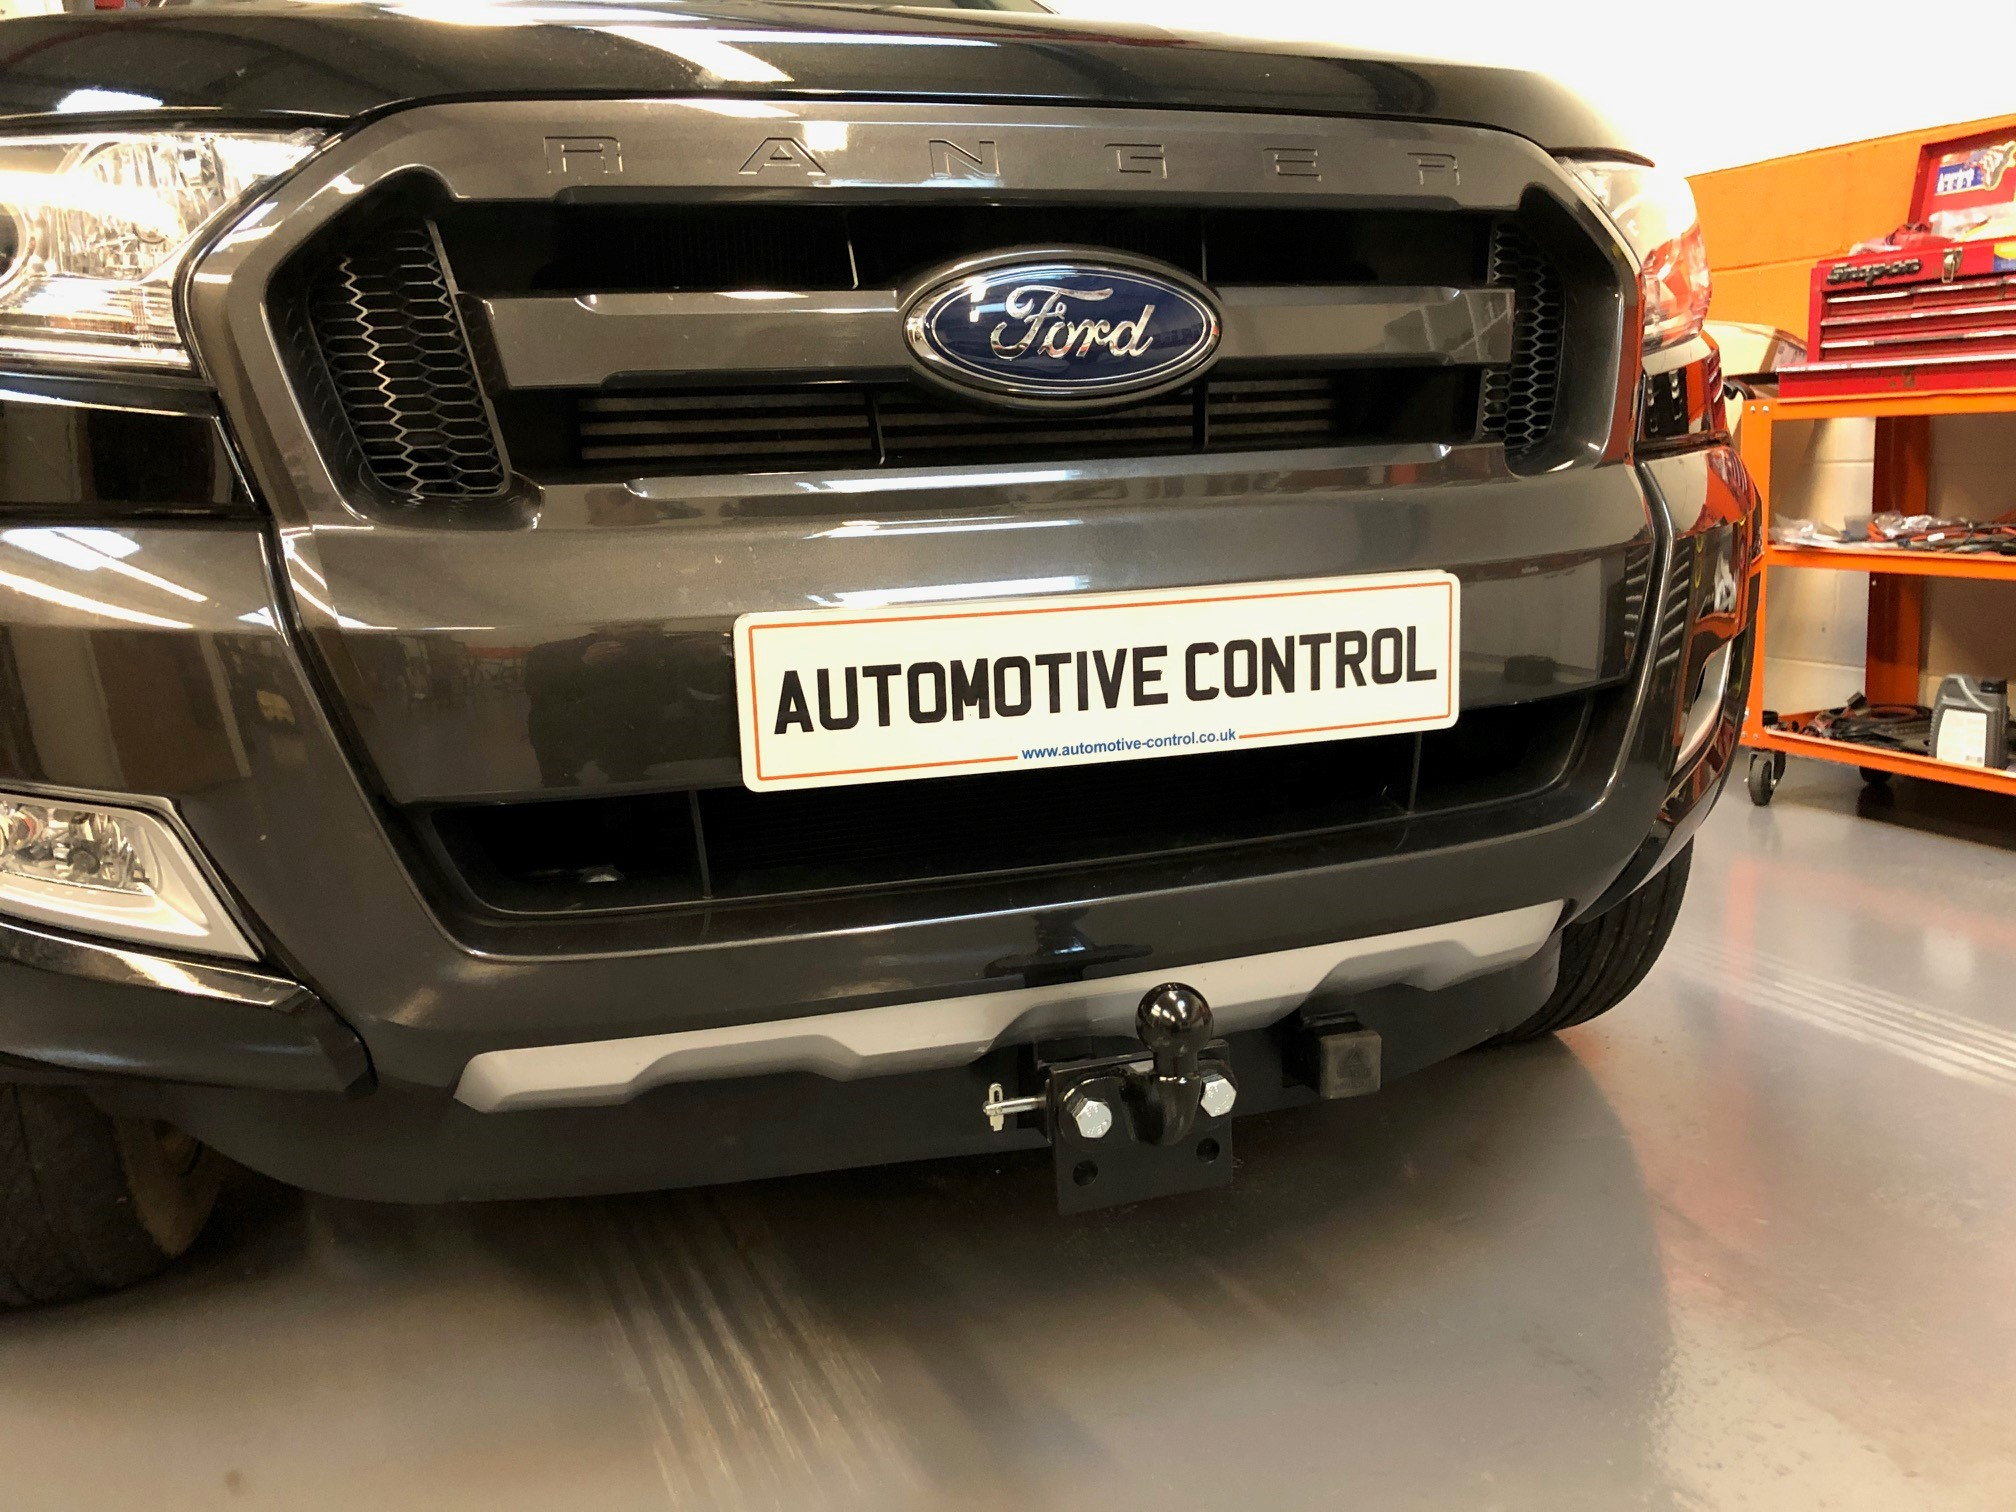 Ford Ranger Wildtrak Front Towbar Automotive Control Bristol